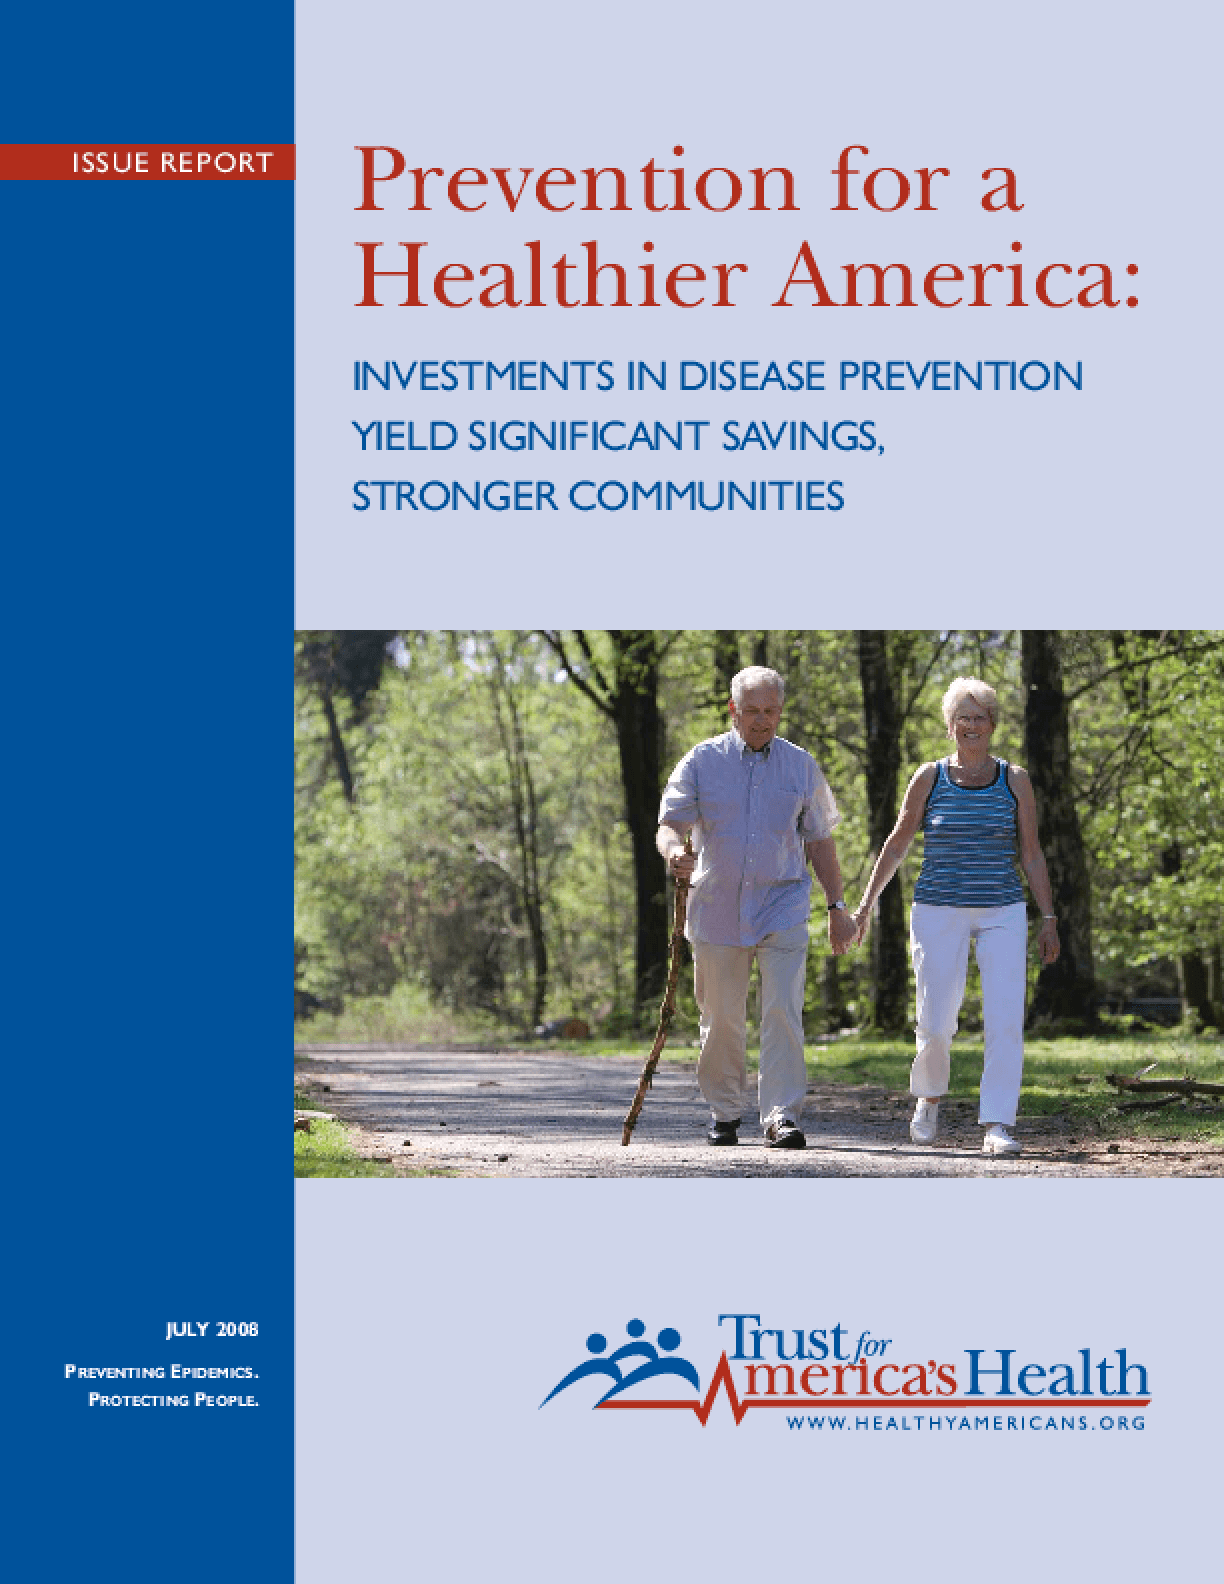 Prevention for a Healthier America: Investments in Disease Prevention Yield Significant Savings, Stronger Communities